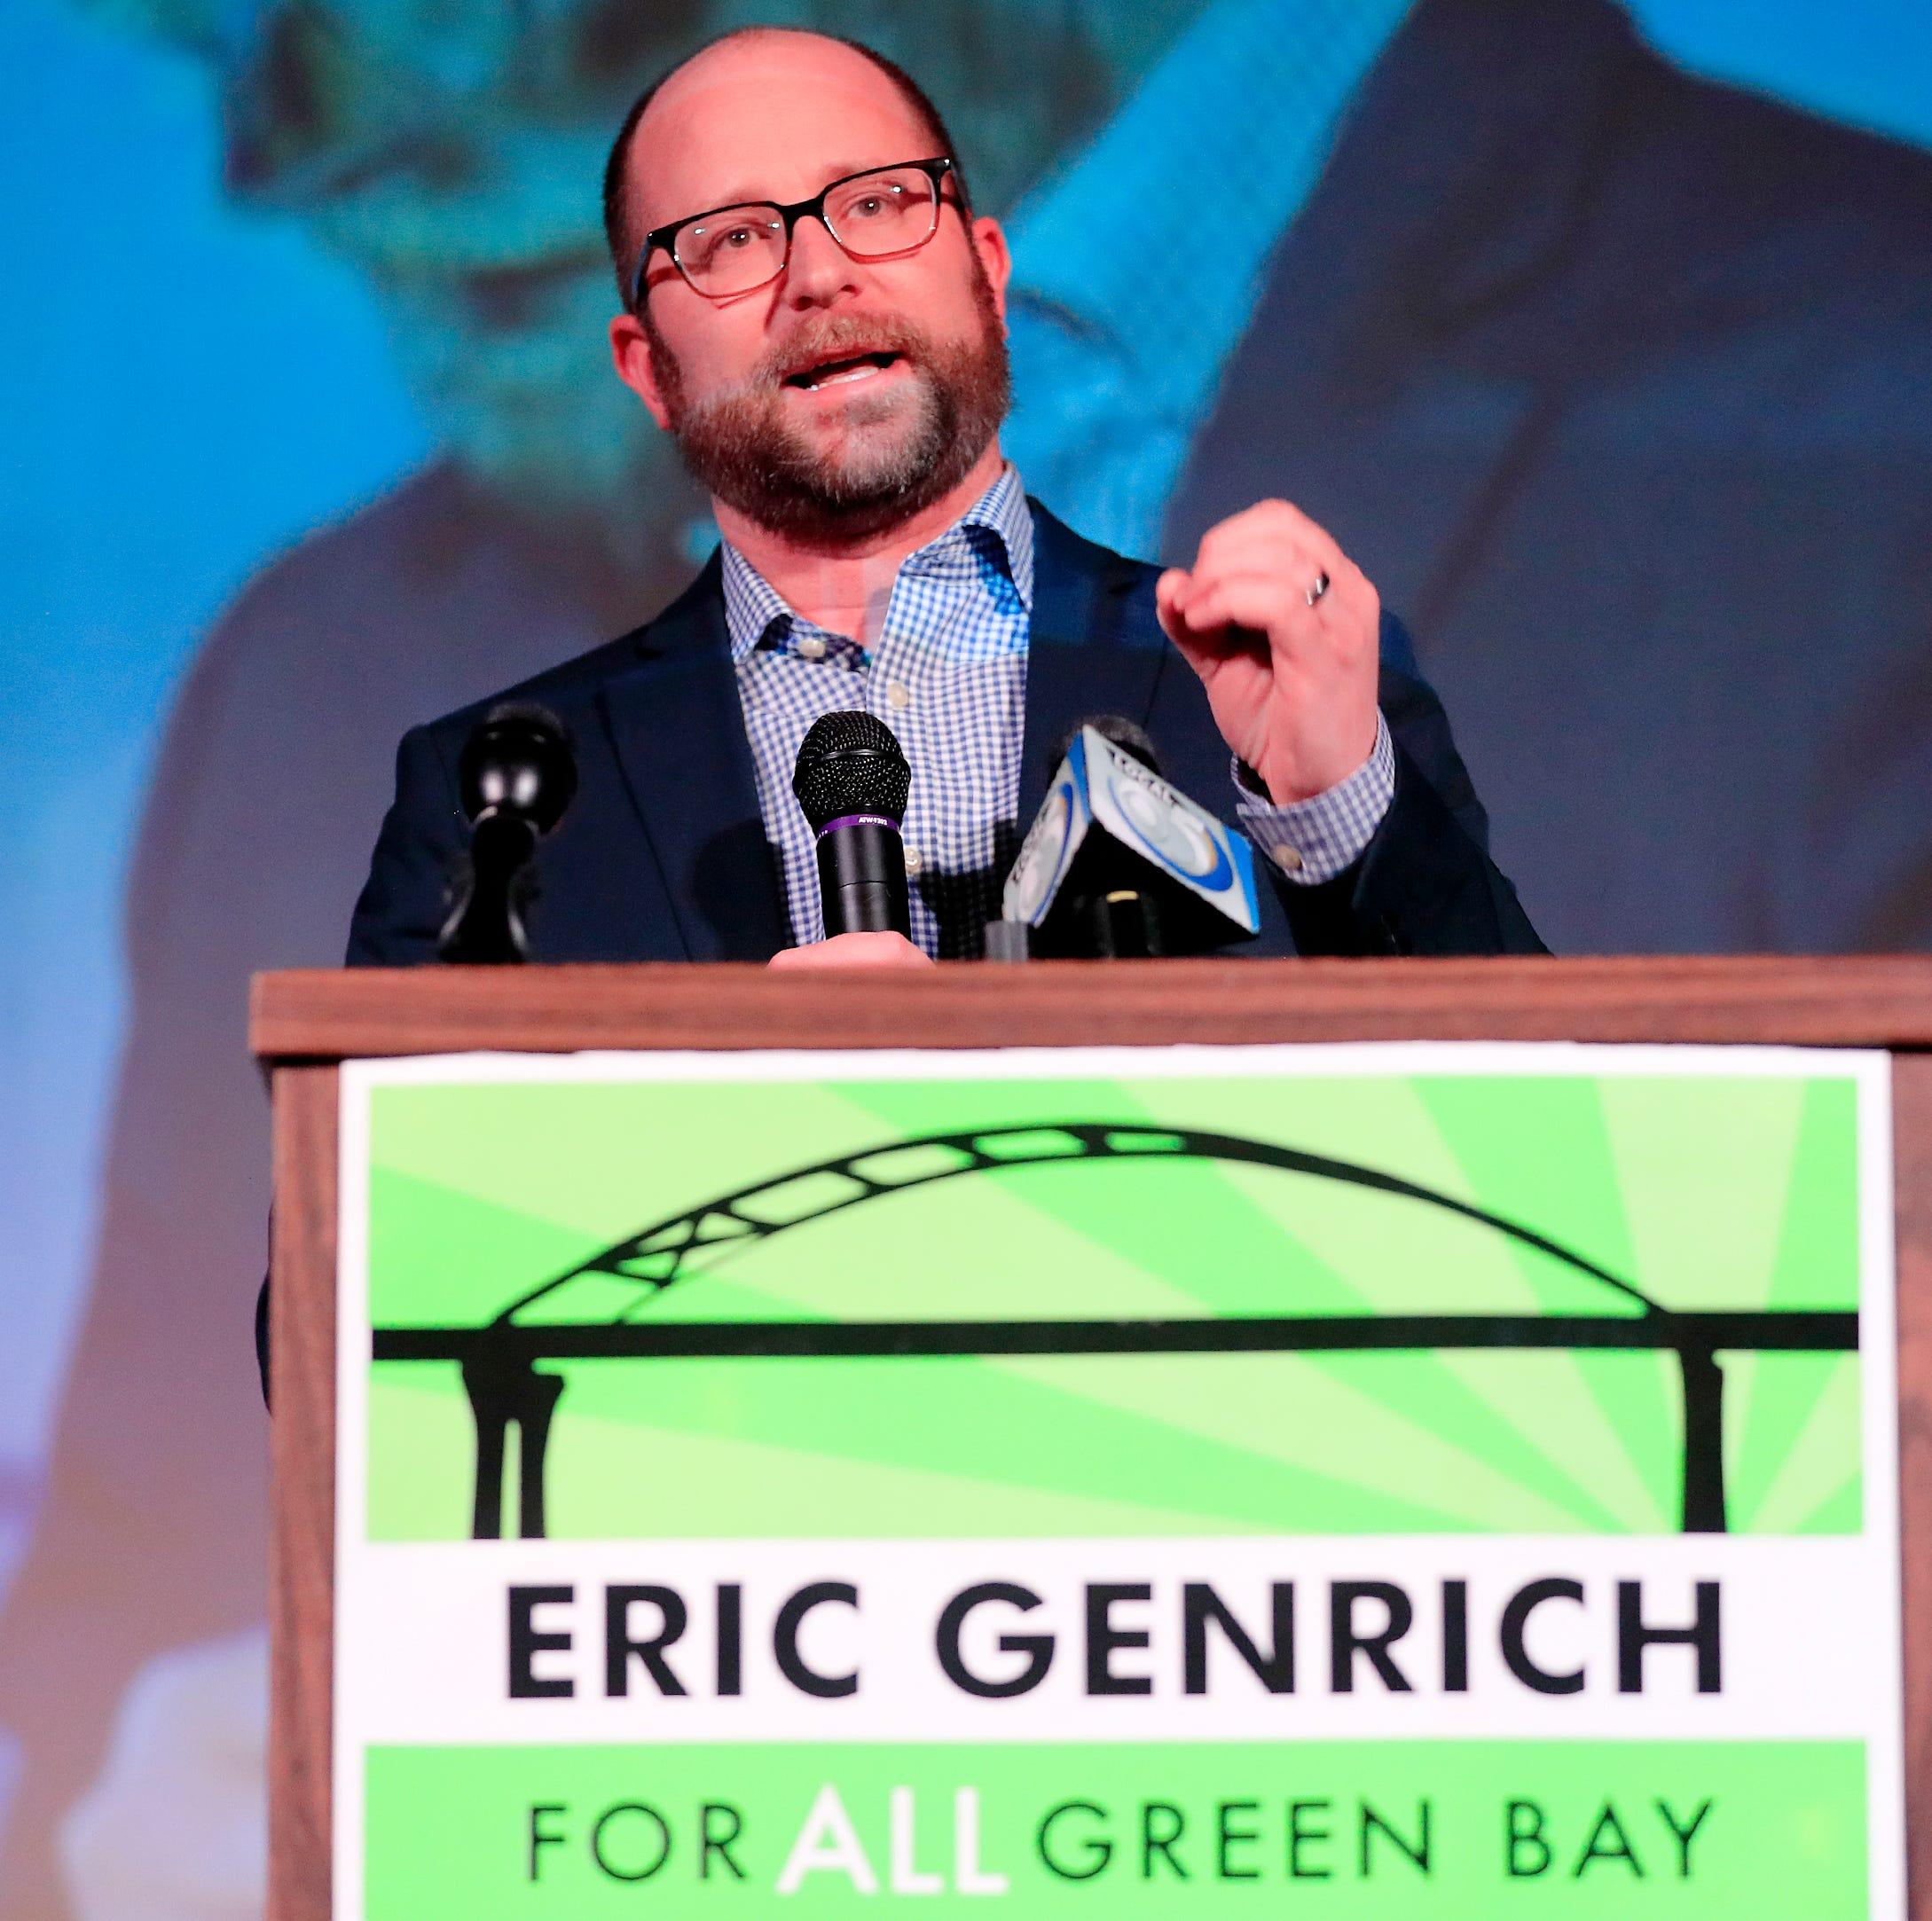 Eric Genrich defeats Patrick Buckley to become Green Bay's first new mayor in 16 years